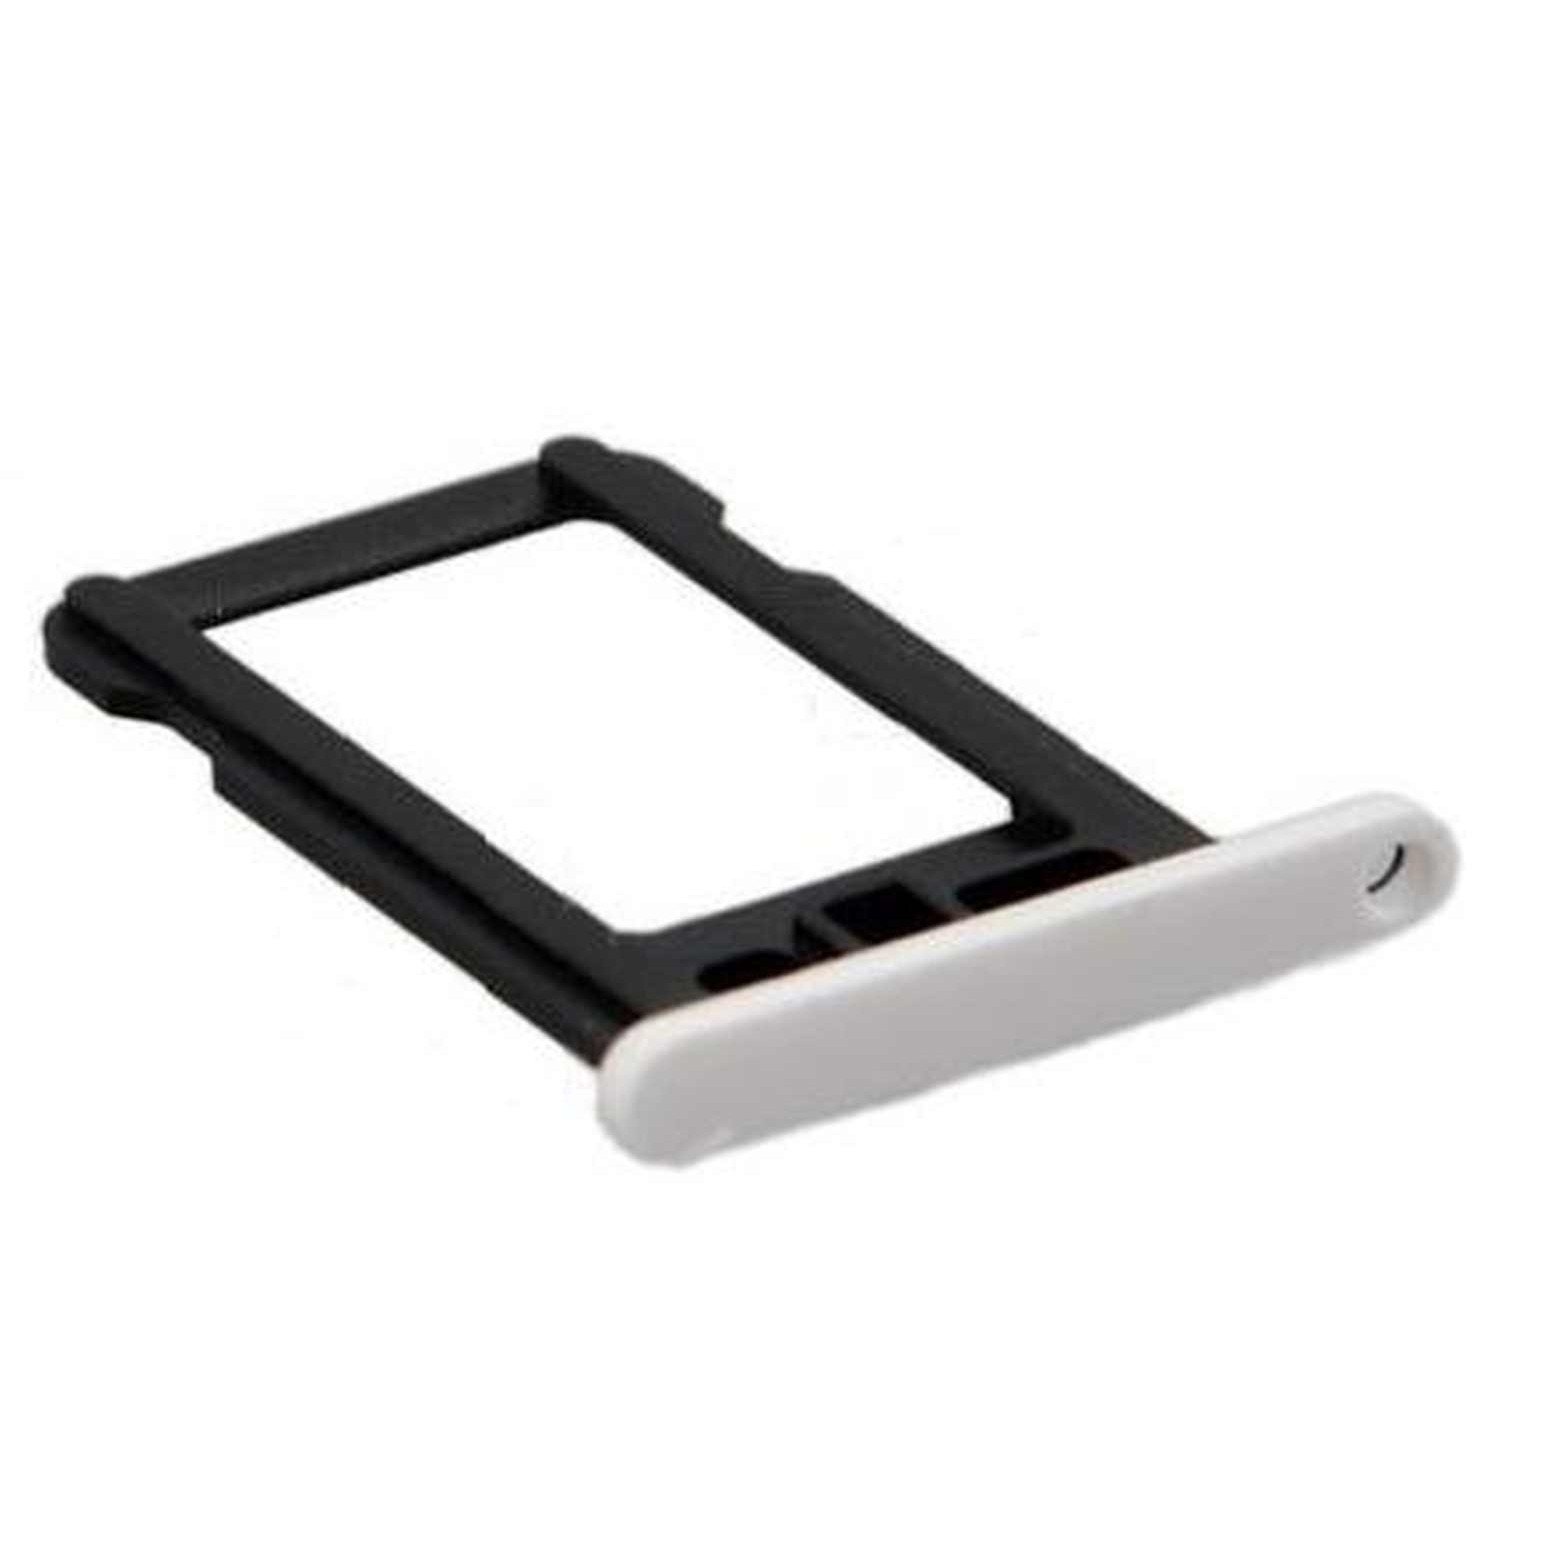 super popular 77767 cd3aa SIM Card Holder Tray for Apple iPhone 5c - White